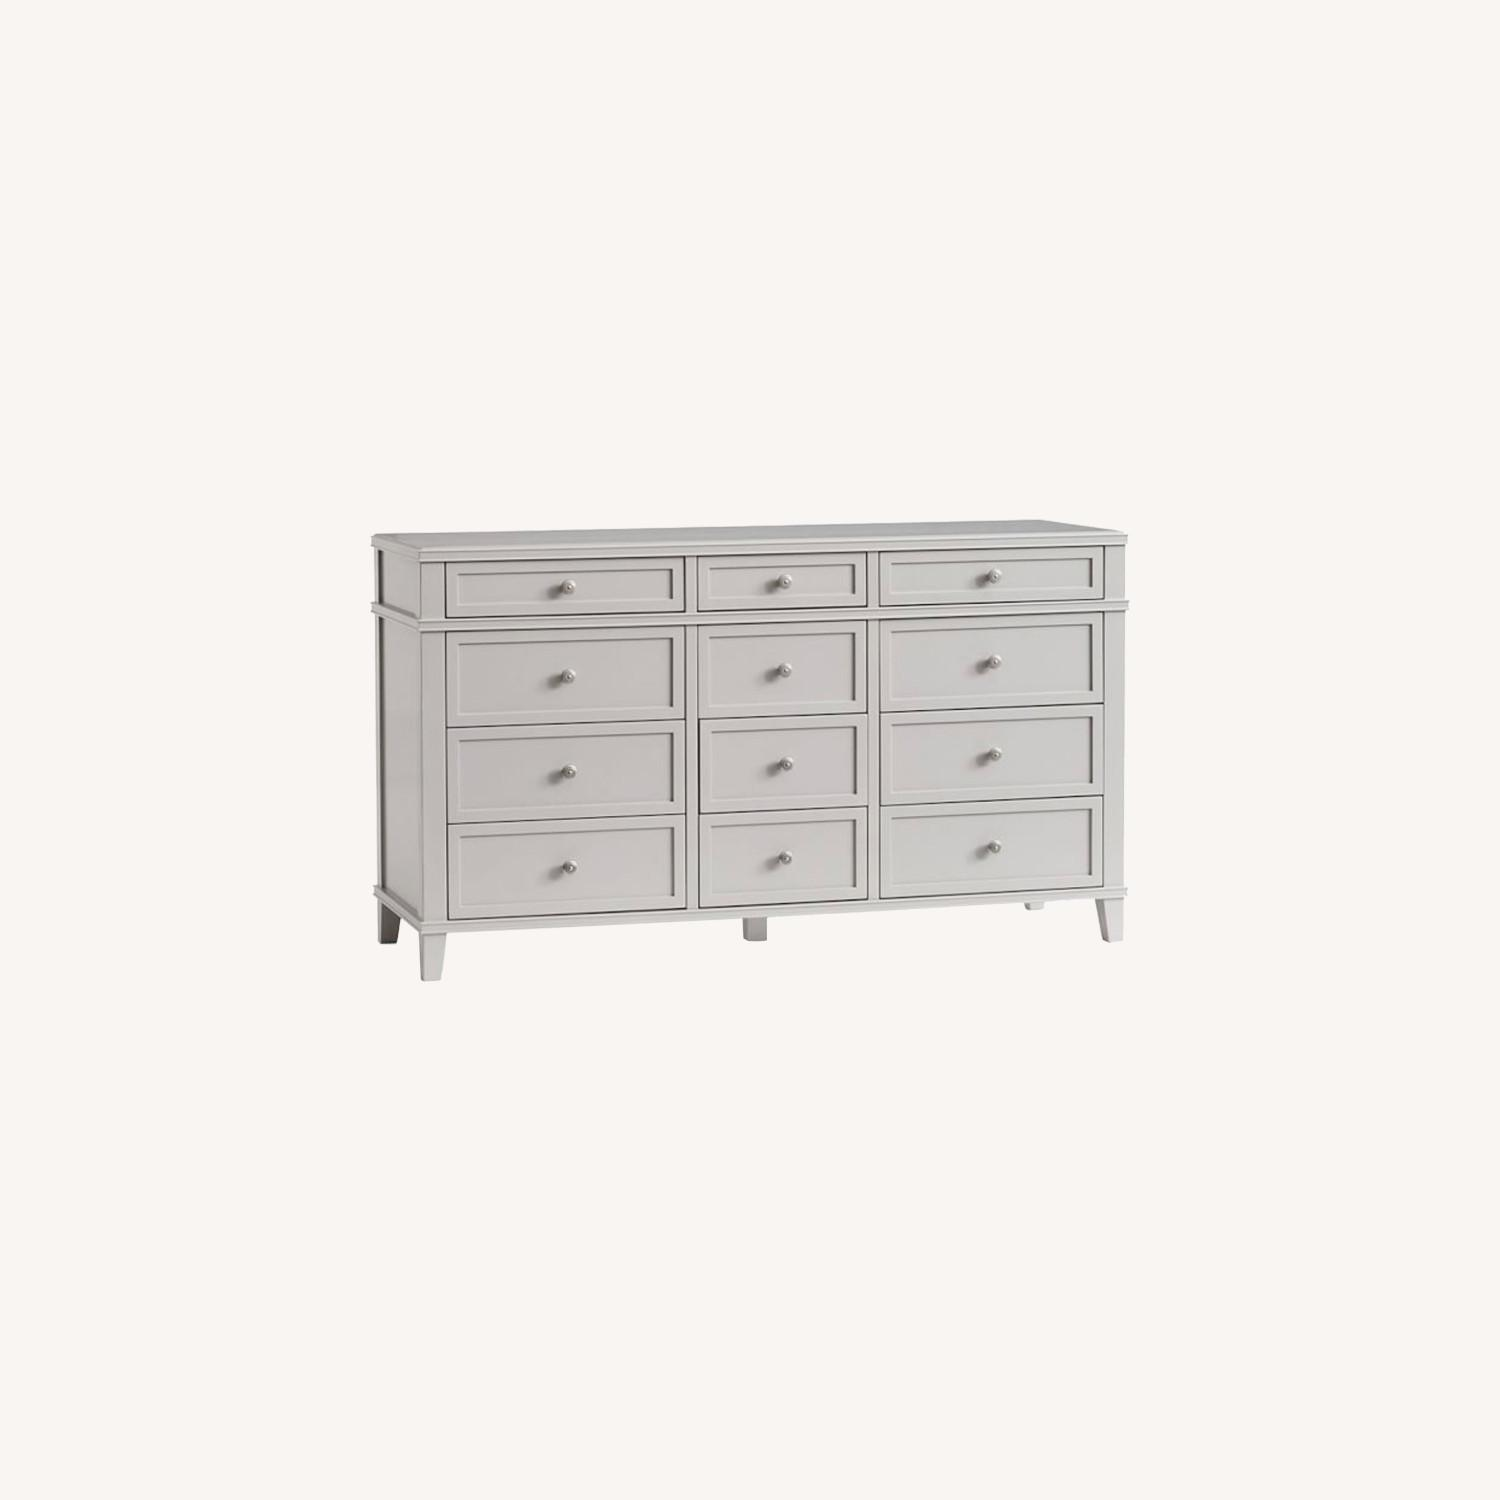 Pottery Barn 12 Drawer Extra Wide Dresser - image-0